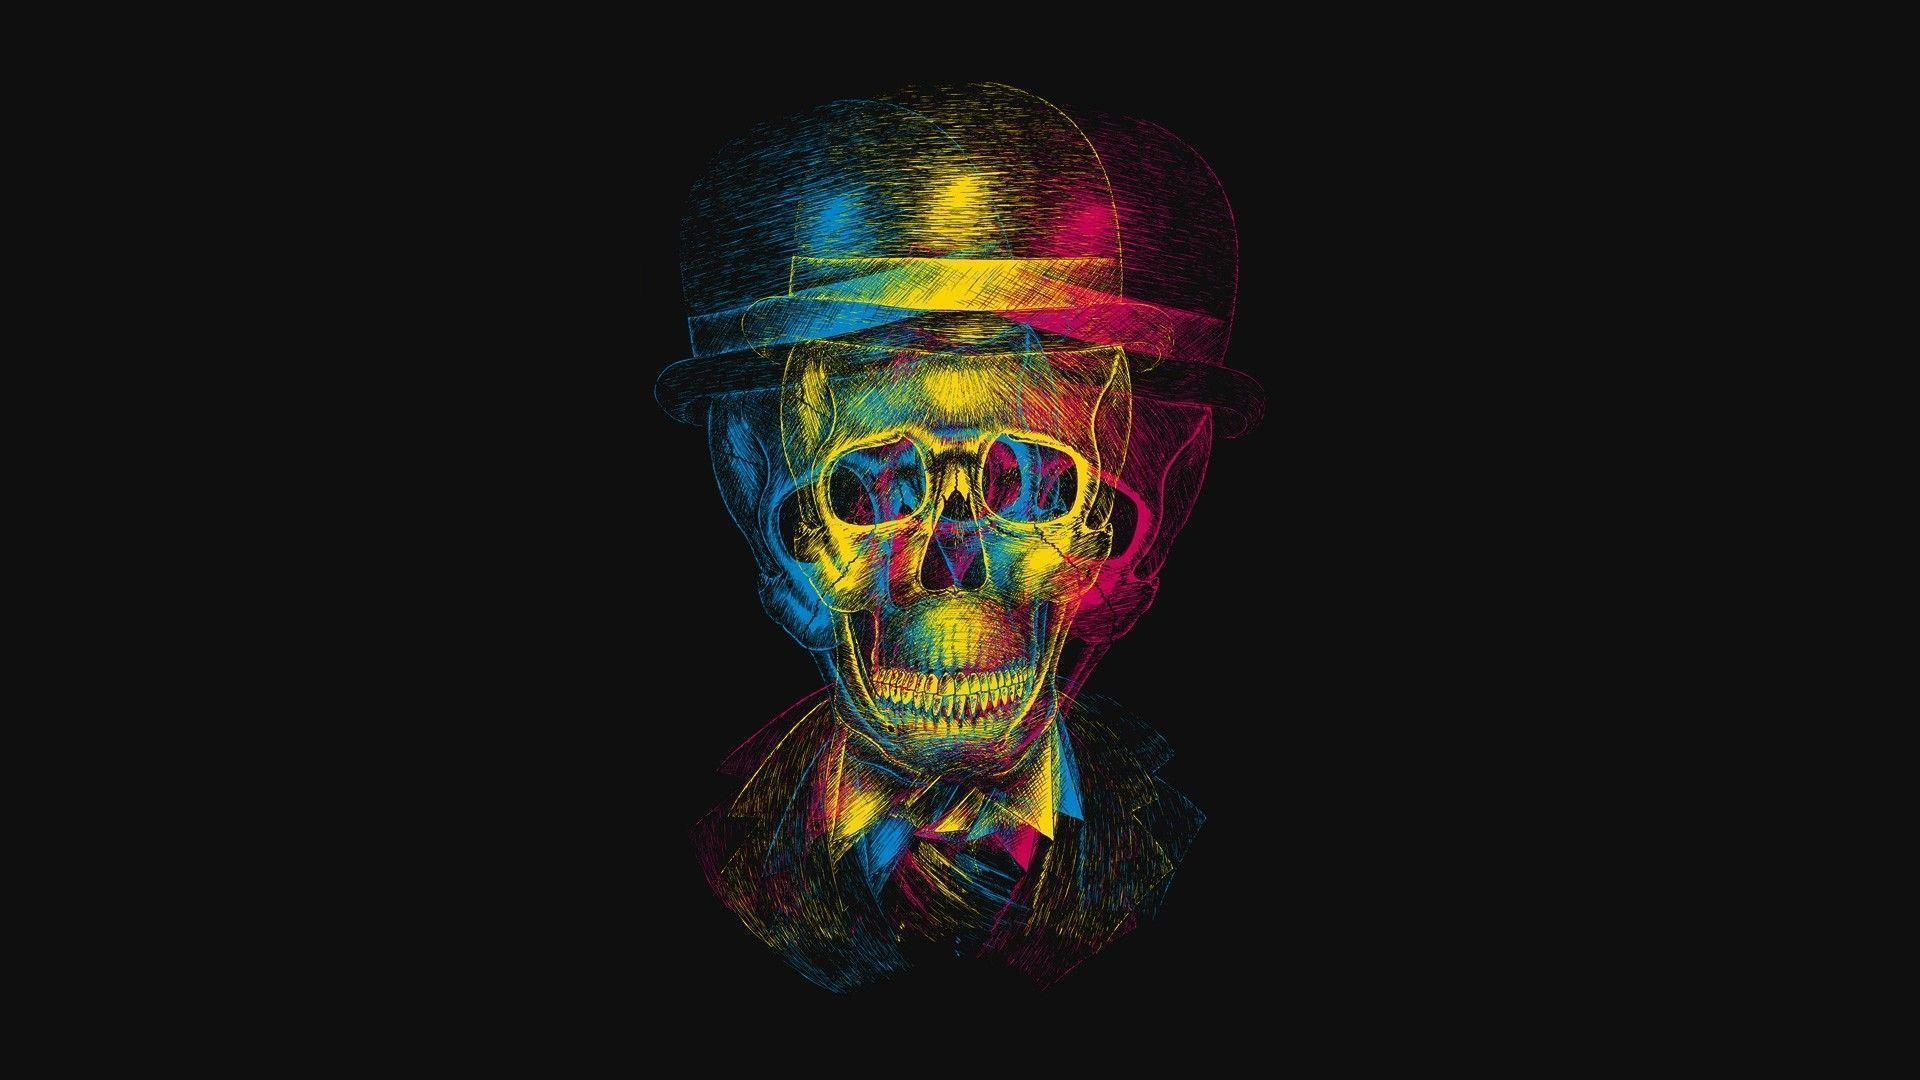 skeleton wallpapers for desktop 2017 - wallpaper cave